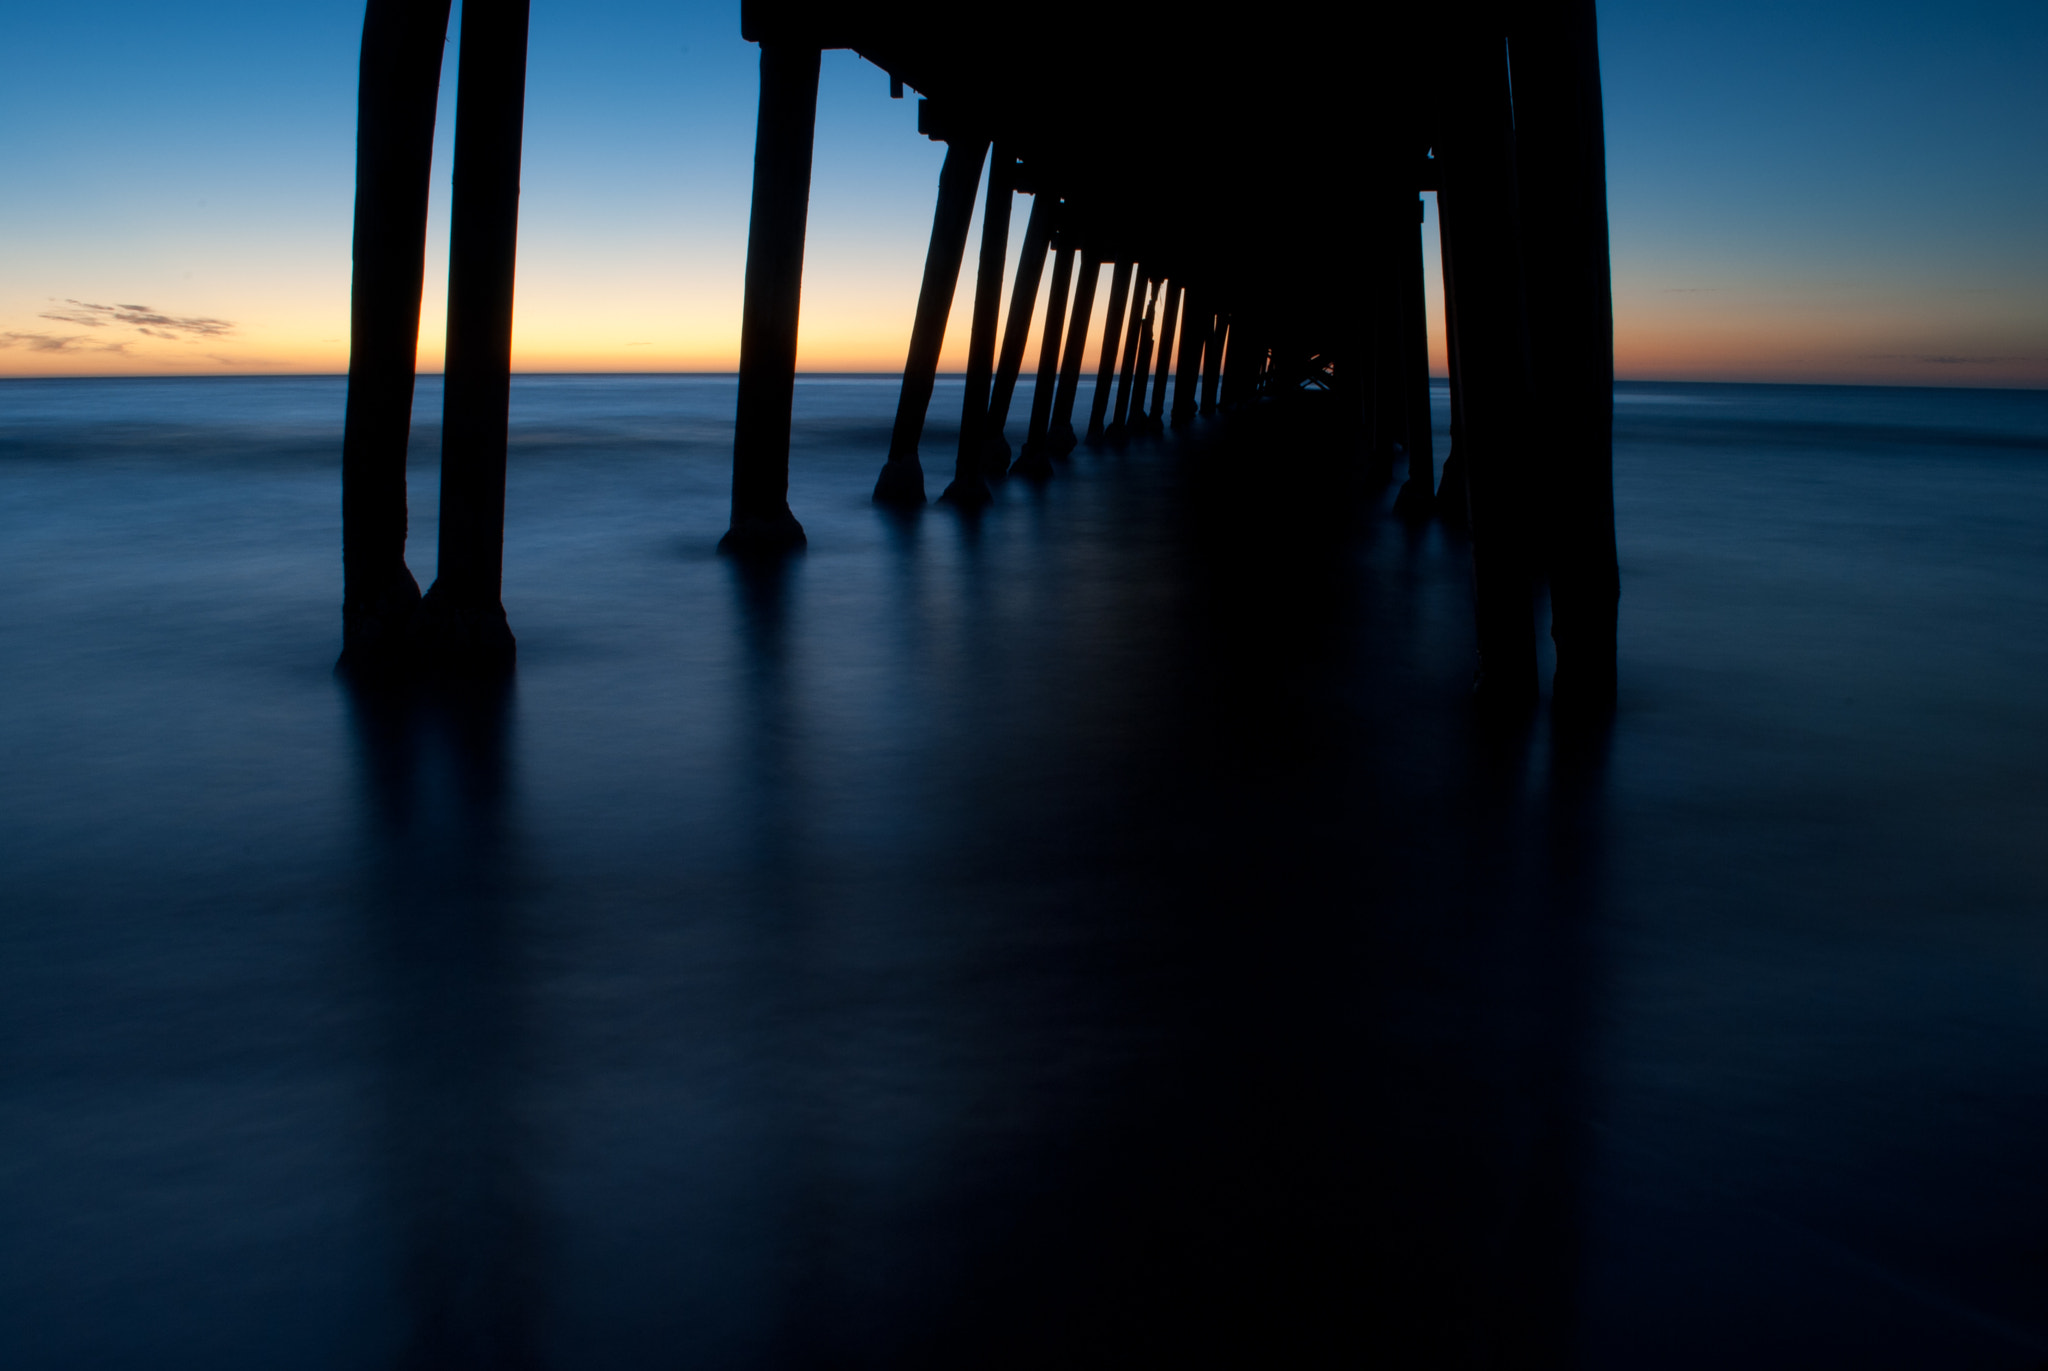 Photograph Jetty silhouette by Scott Novak on 500px